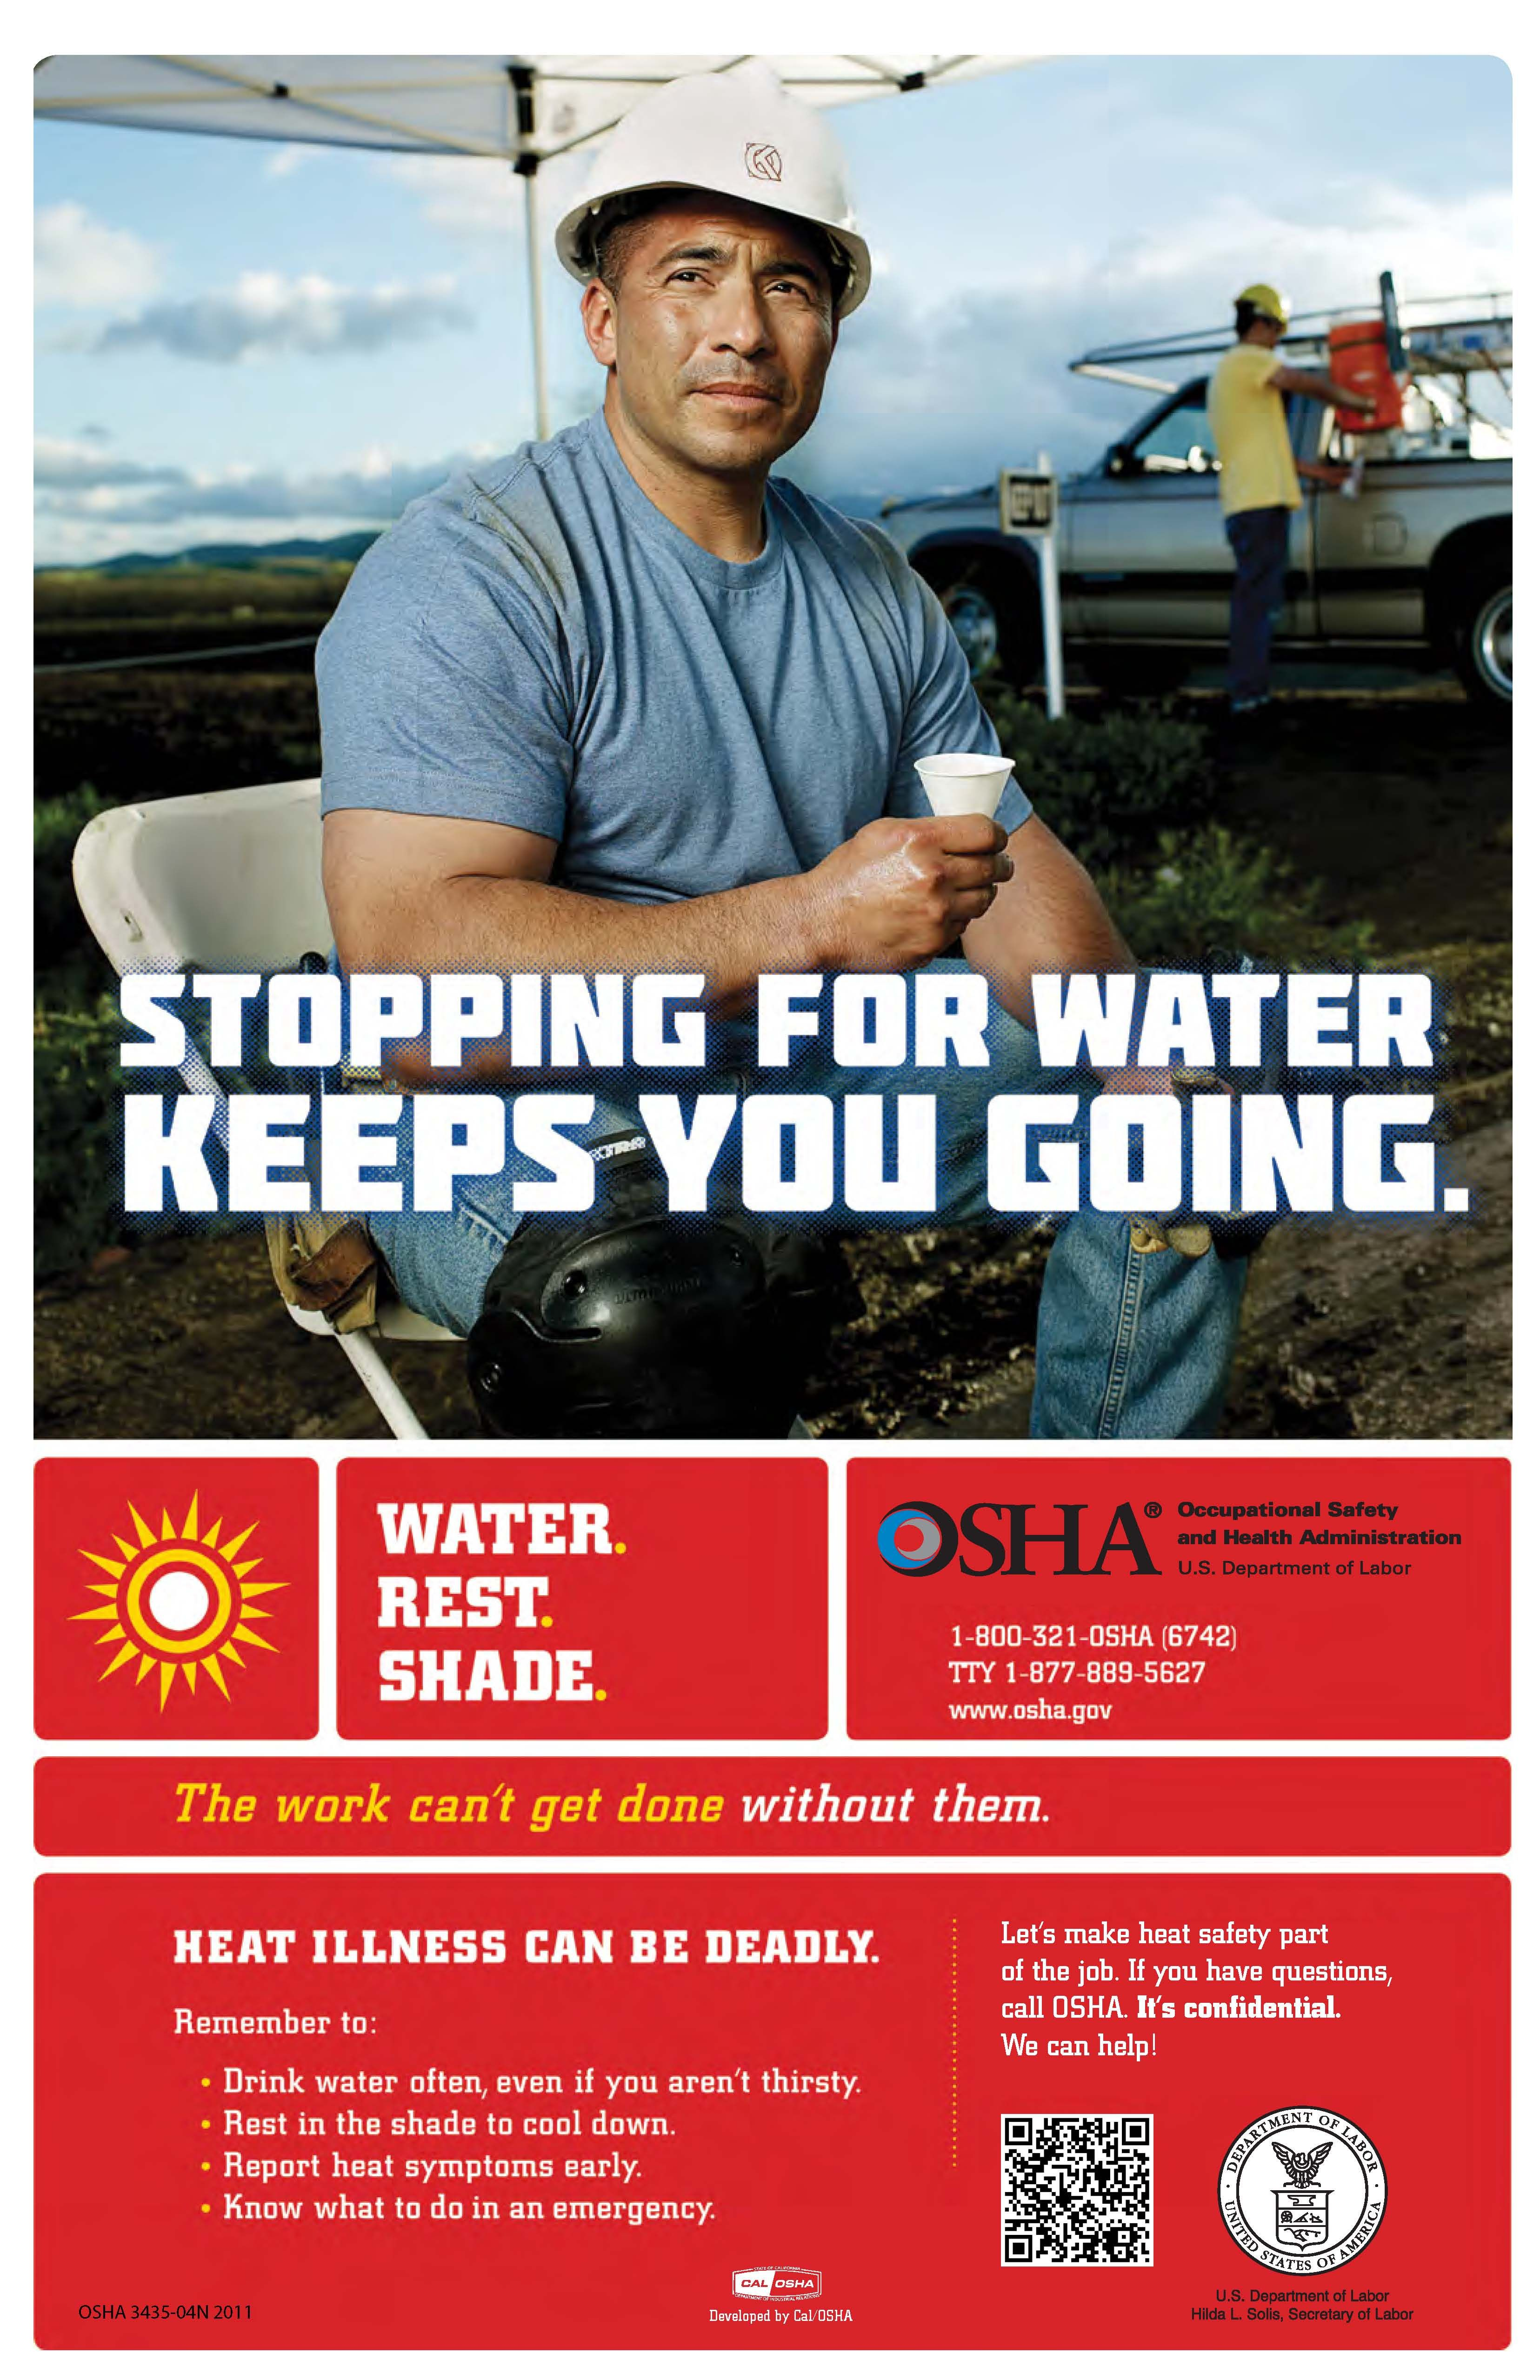 OSHA's Campaign to Prevent Heat Illness in Outdoor Workers